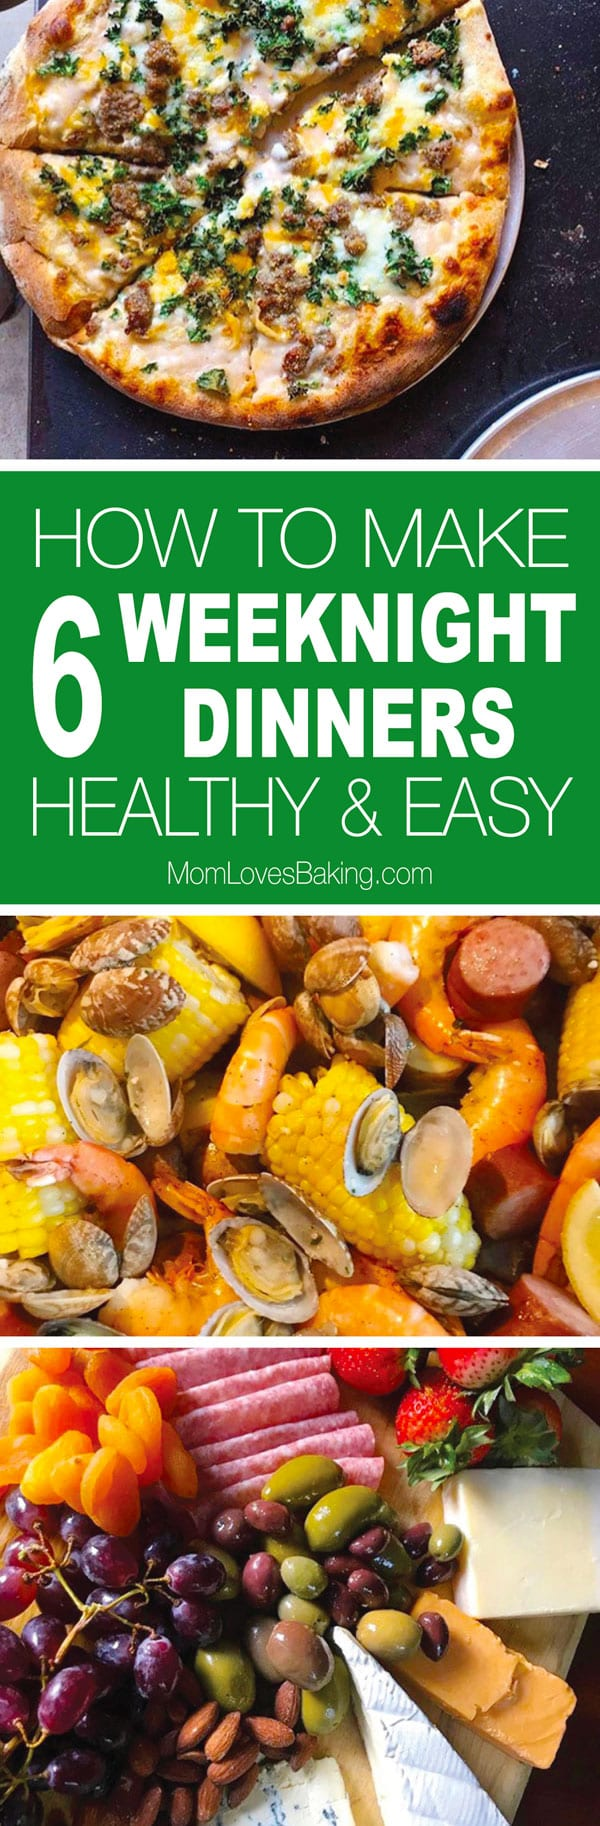 How to make 6 healthy easy weeknight dinners